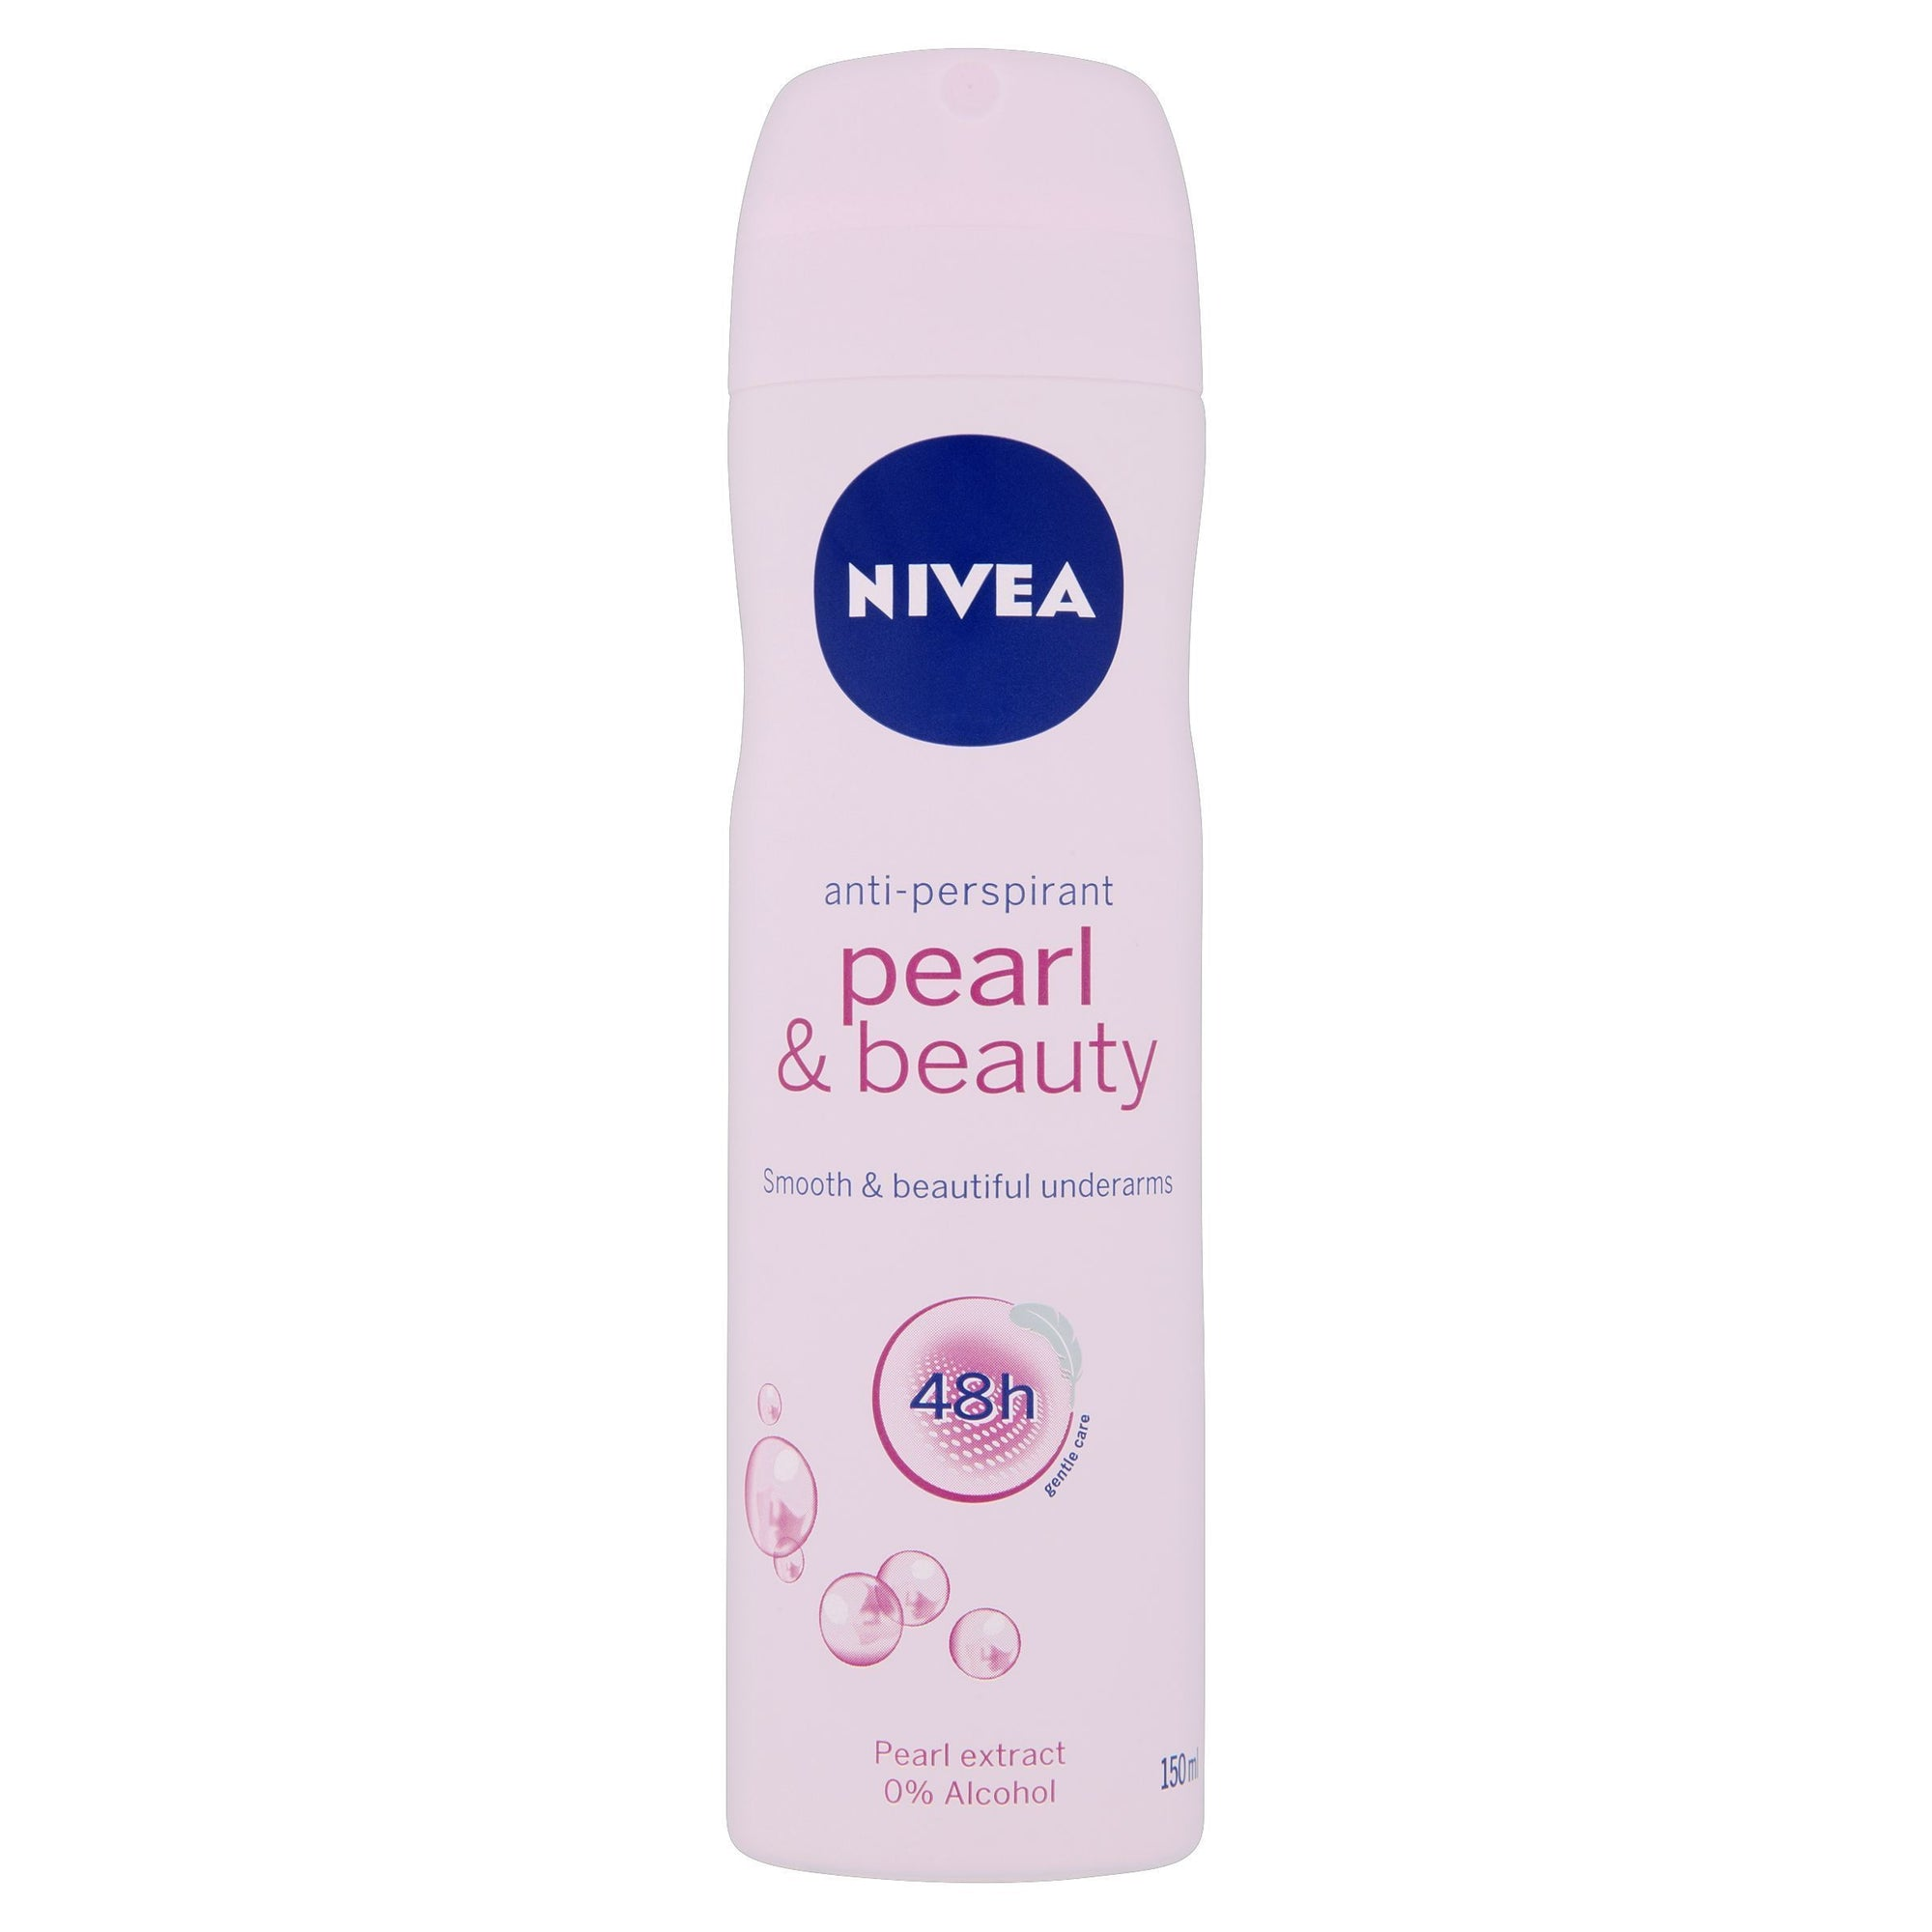 Nivea Pearl & Beauty 48h Anti-Perspirant 150ml - Pack of 6 (Sty-NIVE385WOME)